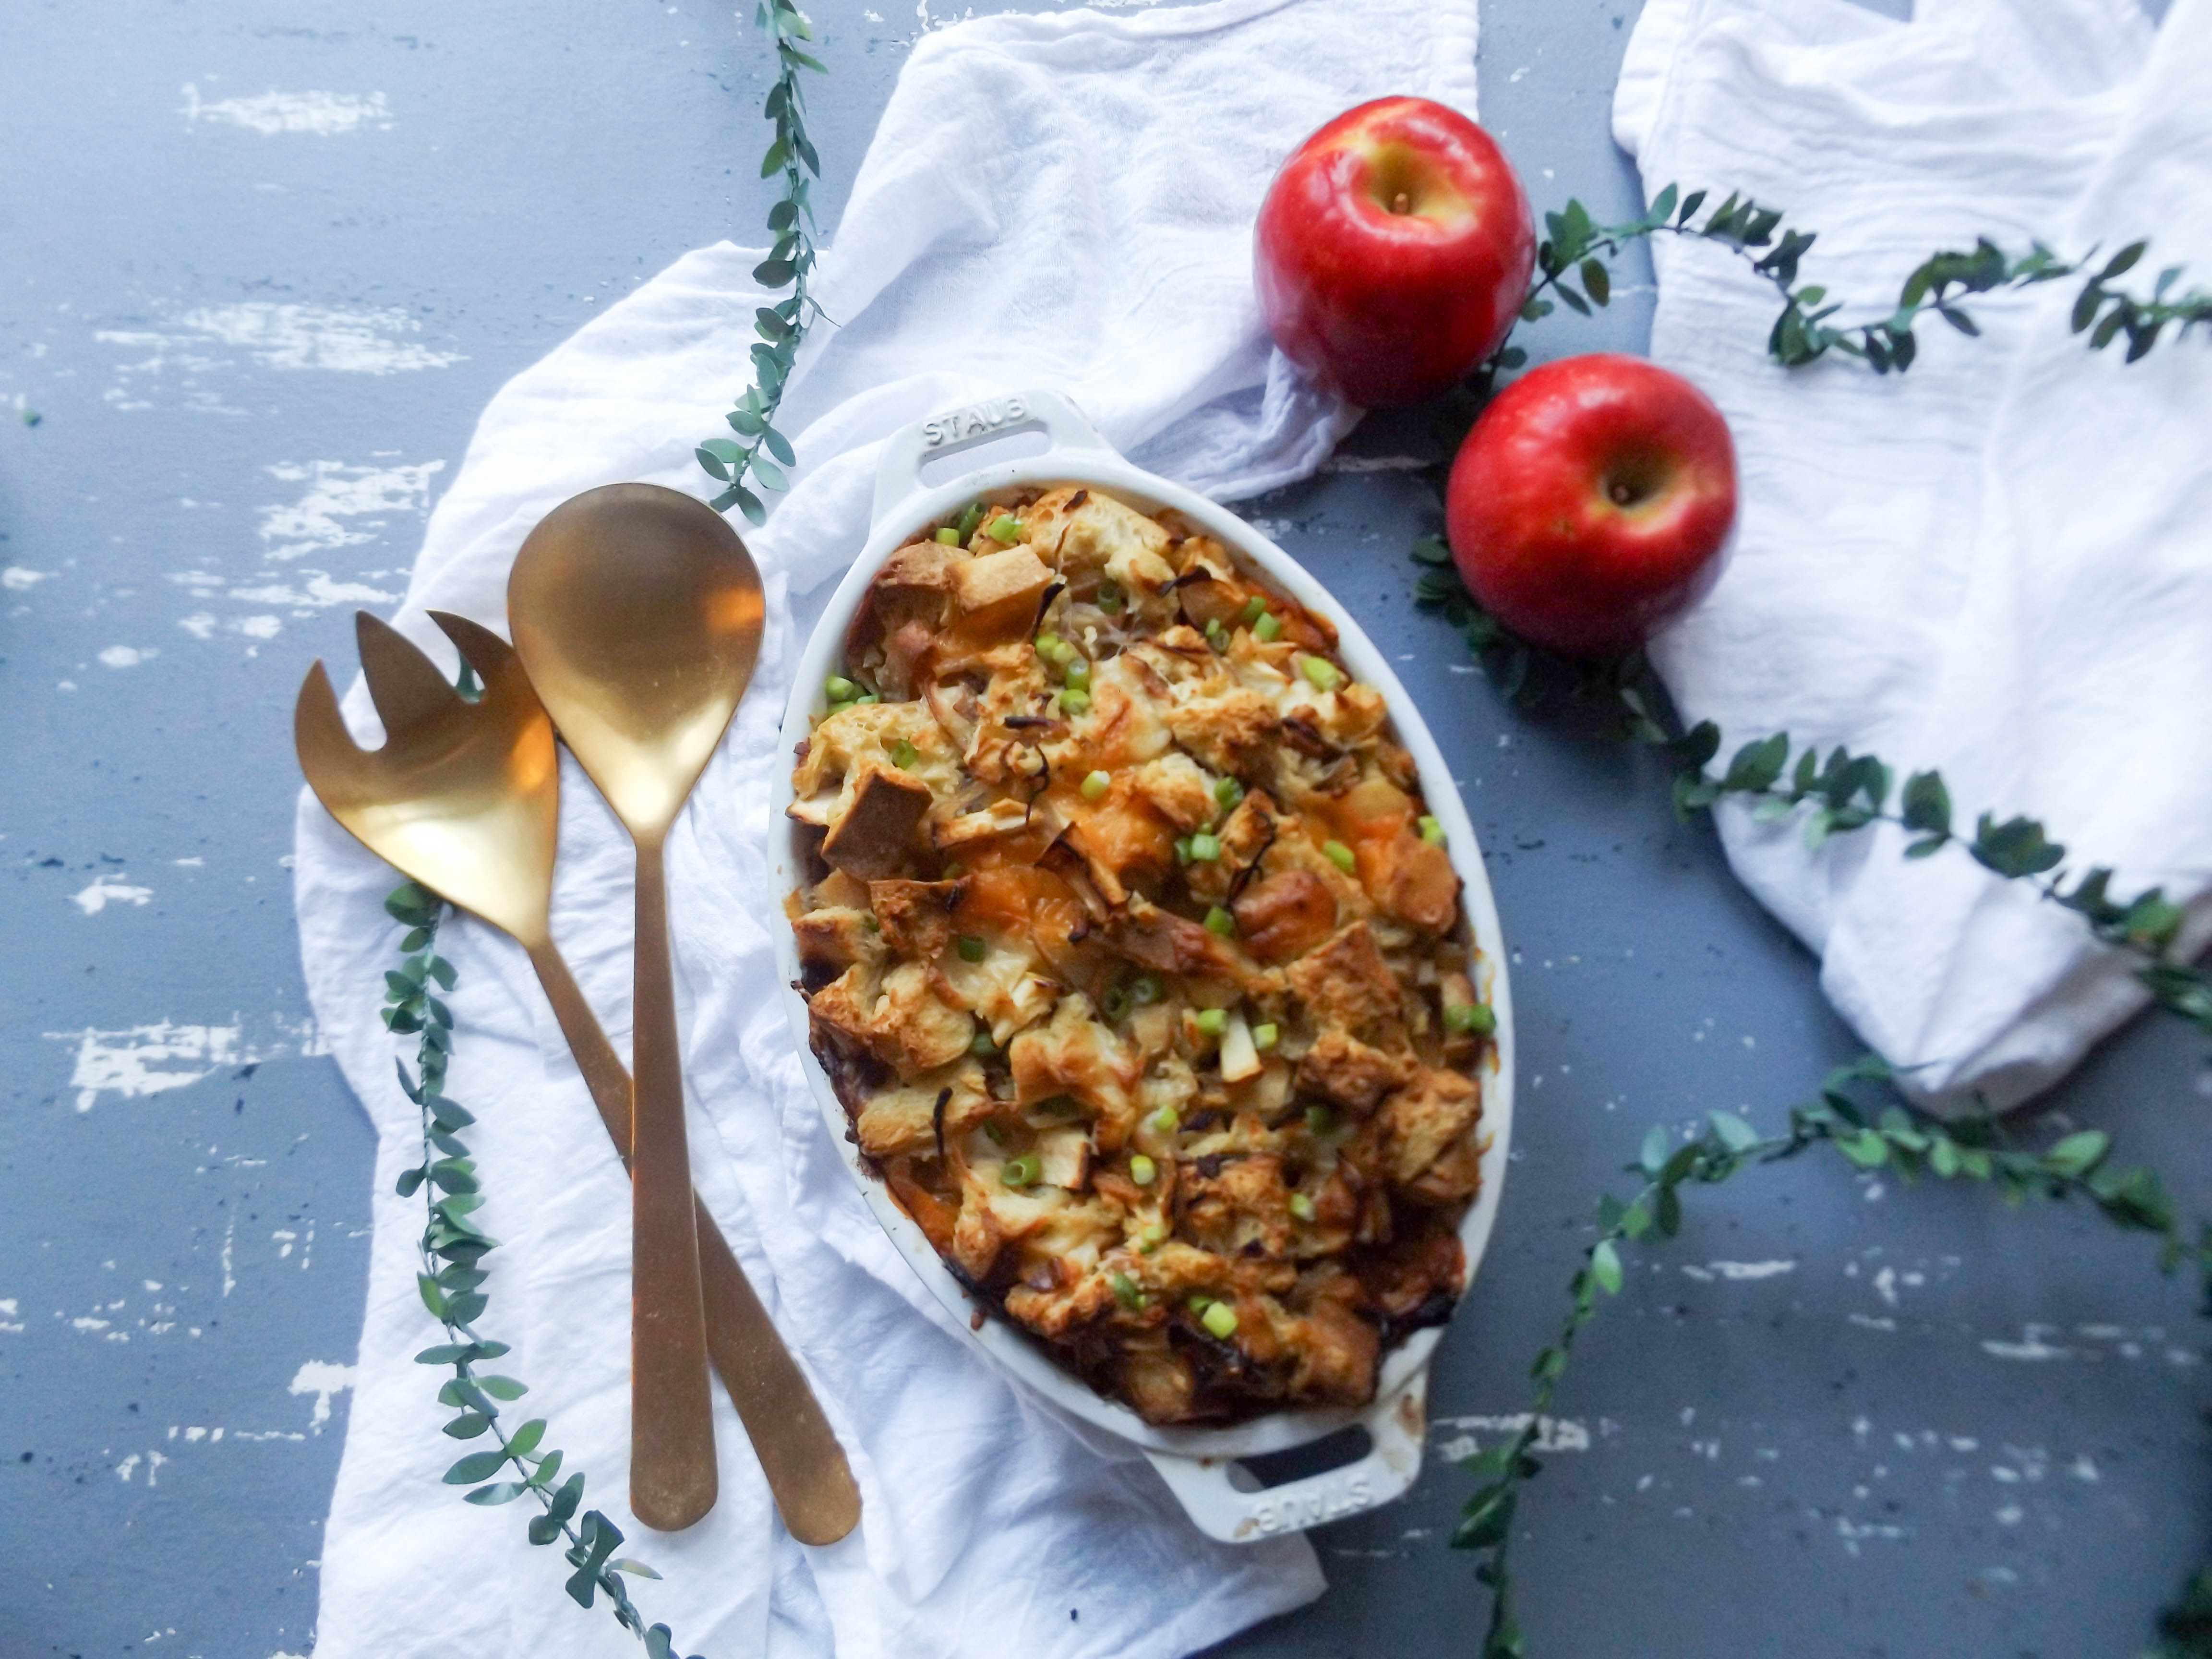 Apple, Caramelized Onion & Cheddar Stuffing